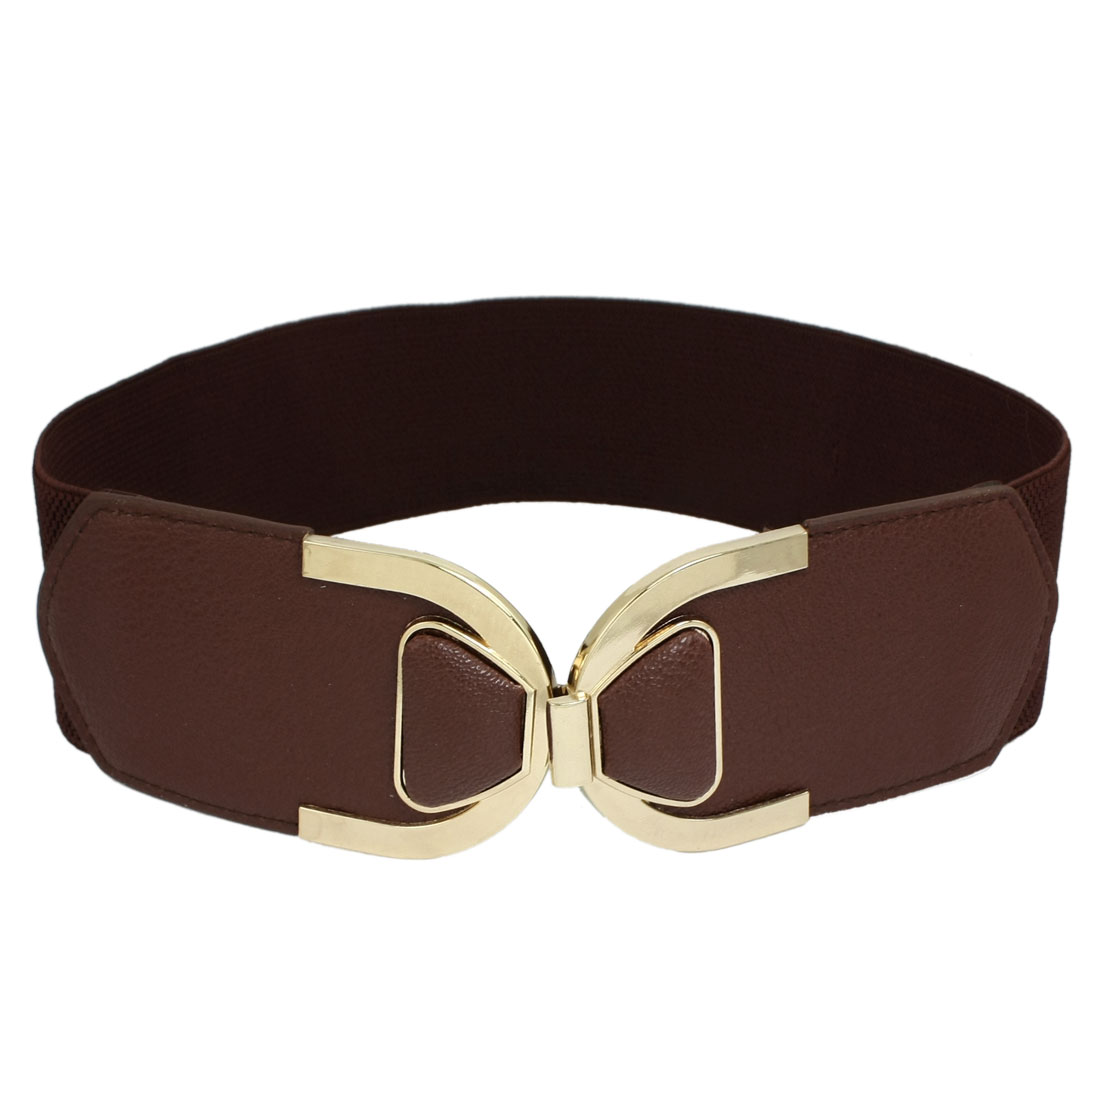 Lady U Shaped Interlocking Buckle Elastic Waist Band Cinch Belt Coffee Color